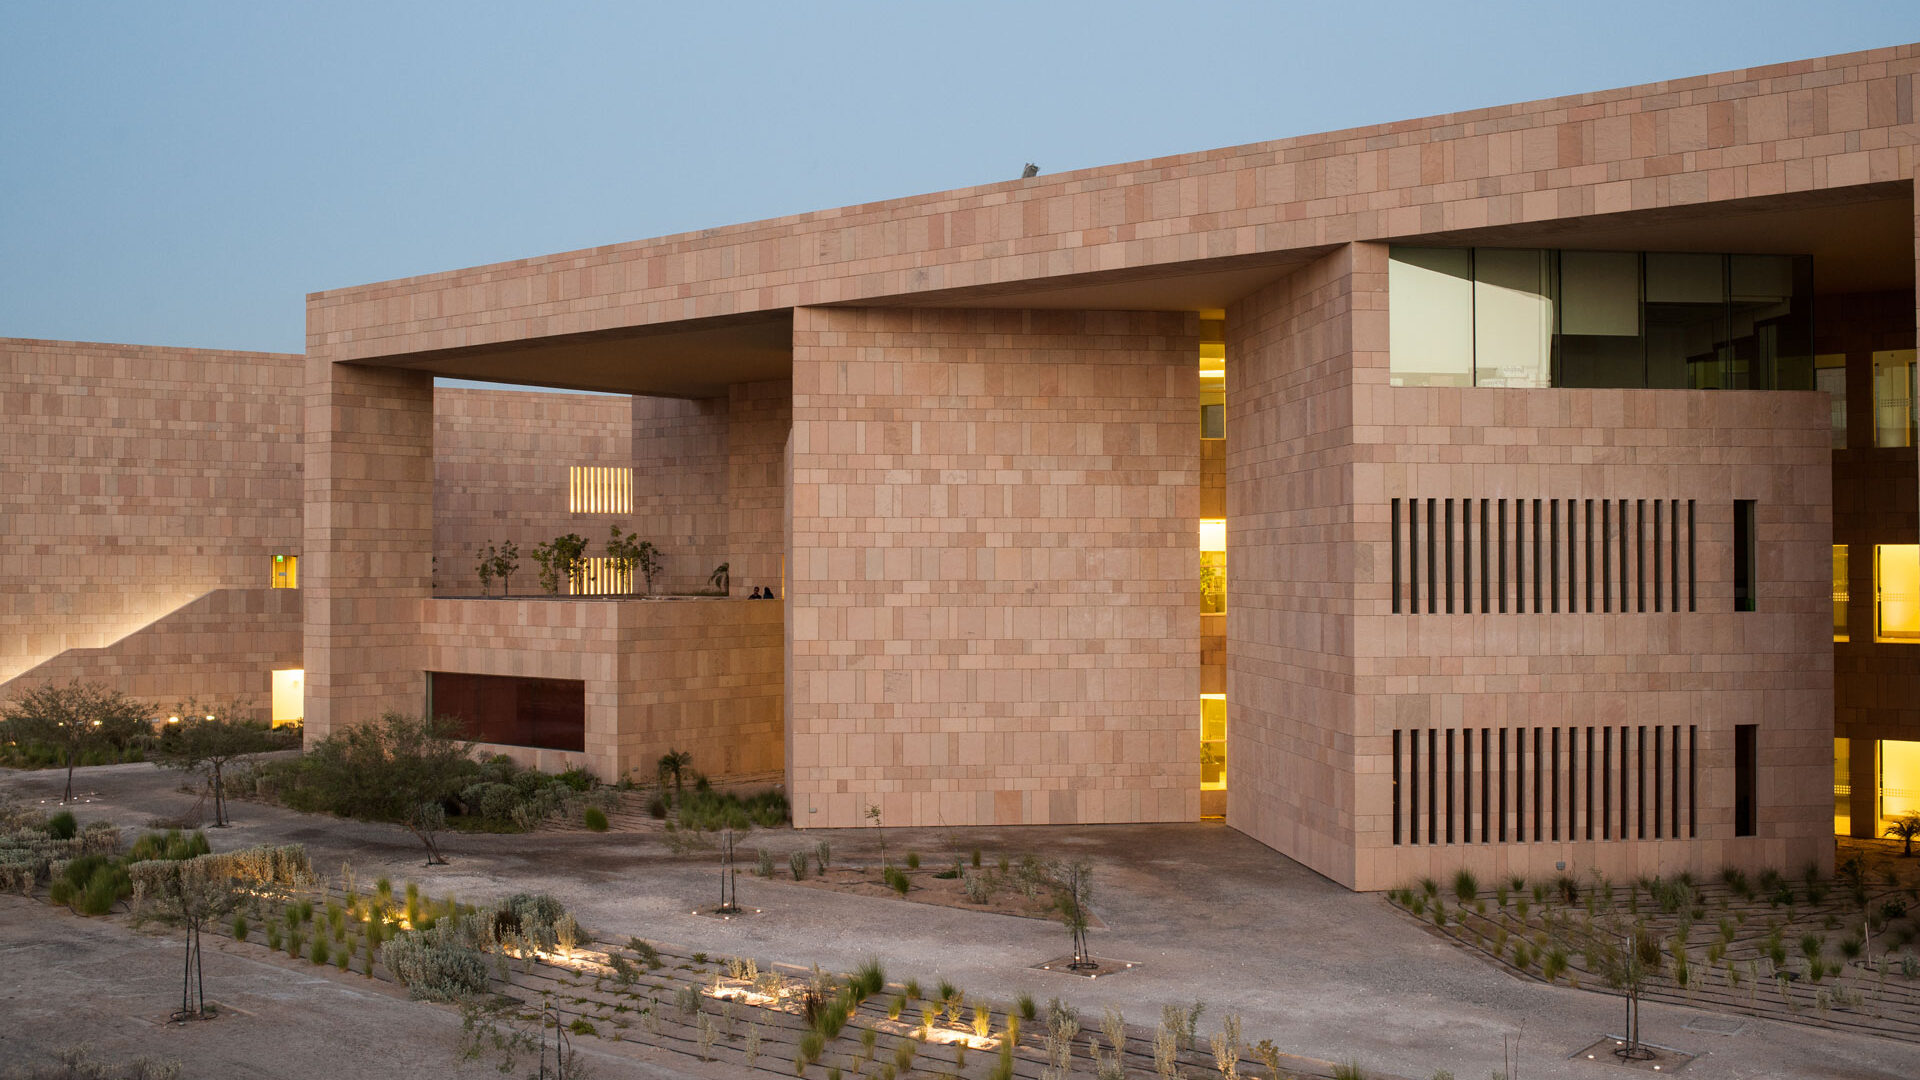 Picture of Georgetown Building taken from the side if QNCC.